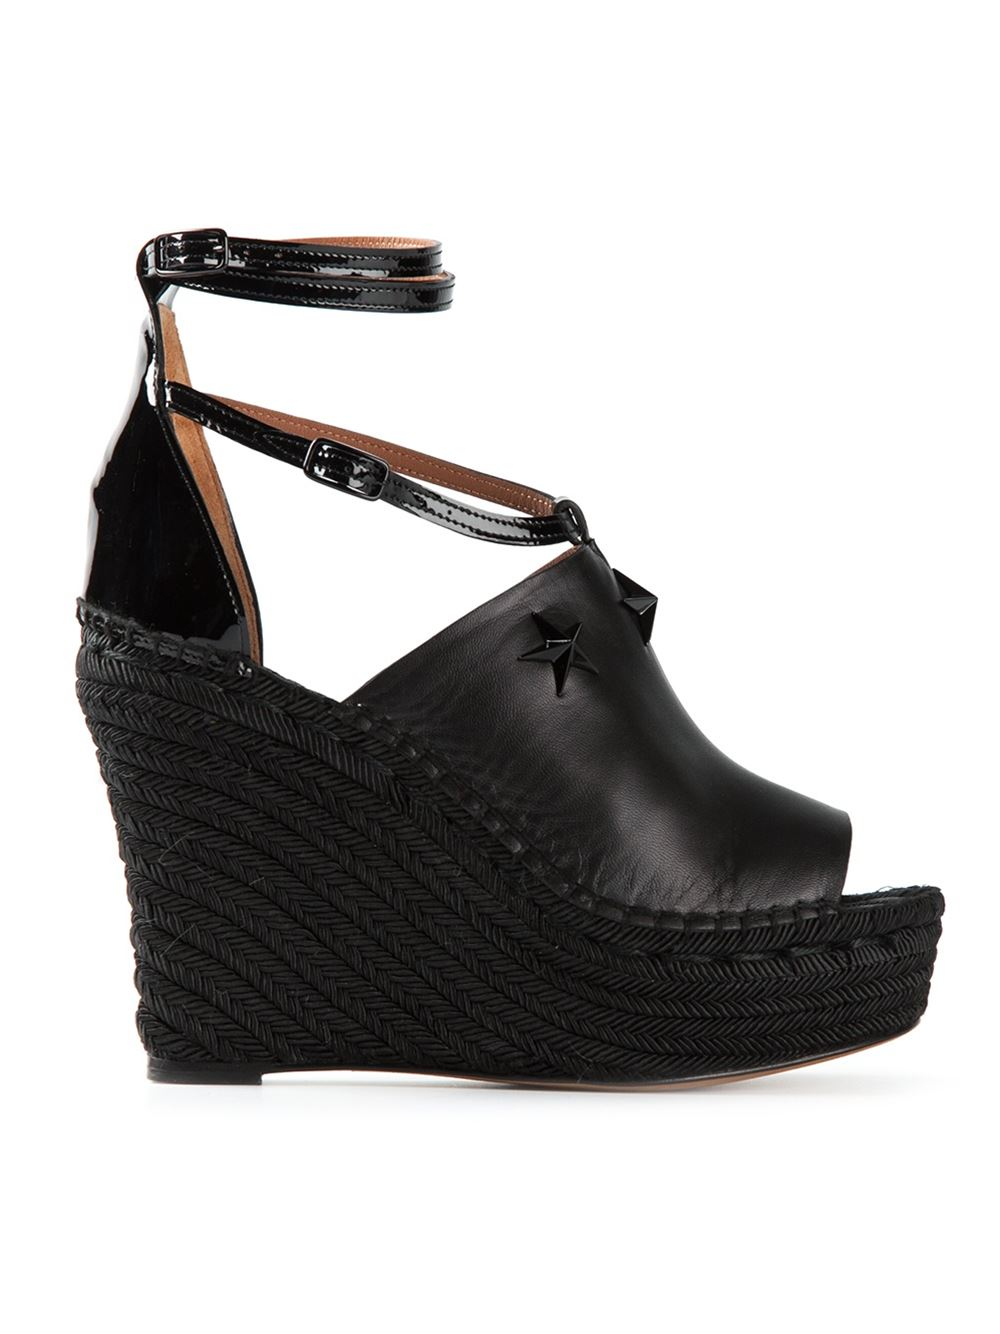 givenchy platform wedge sandals in black lyst